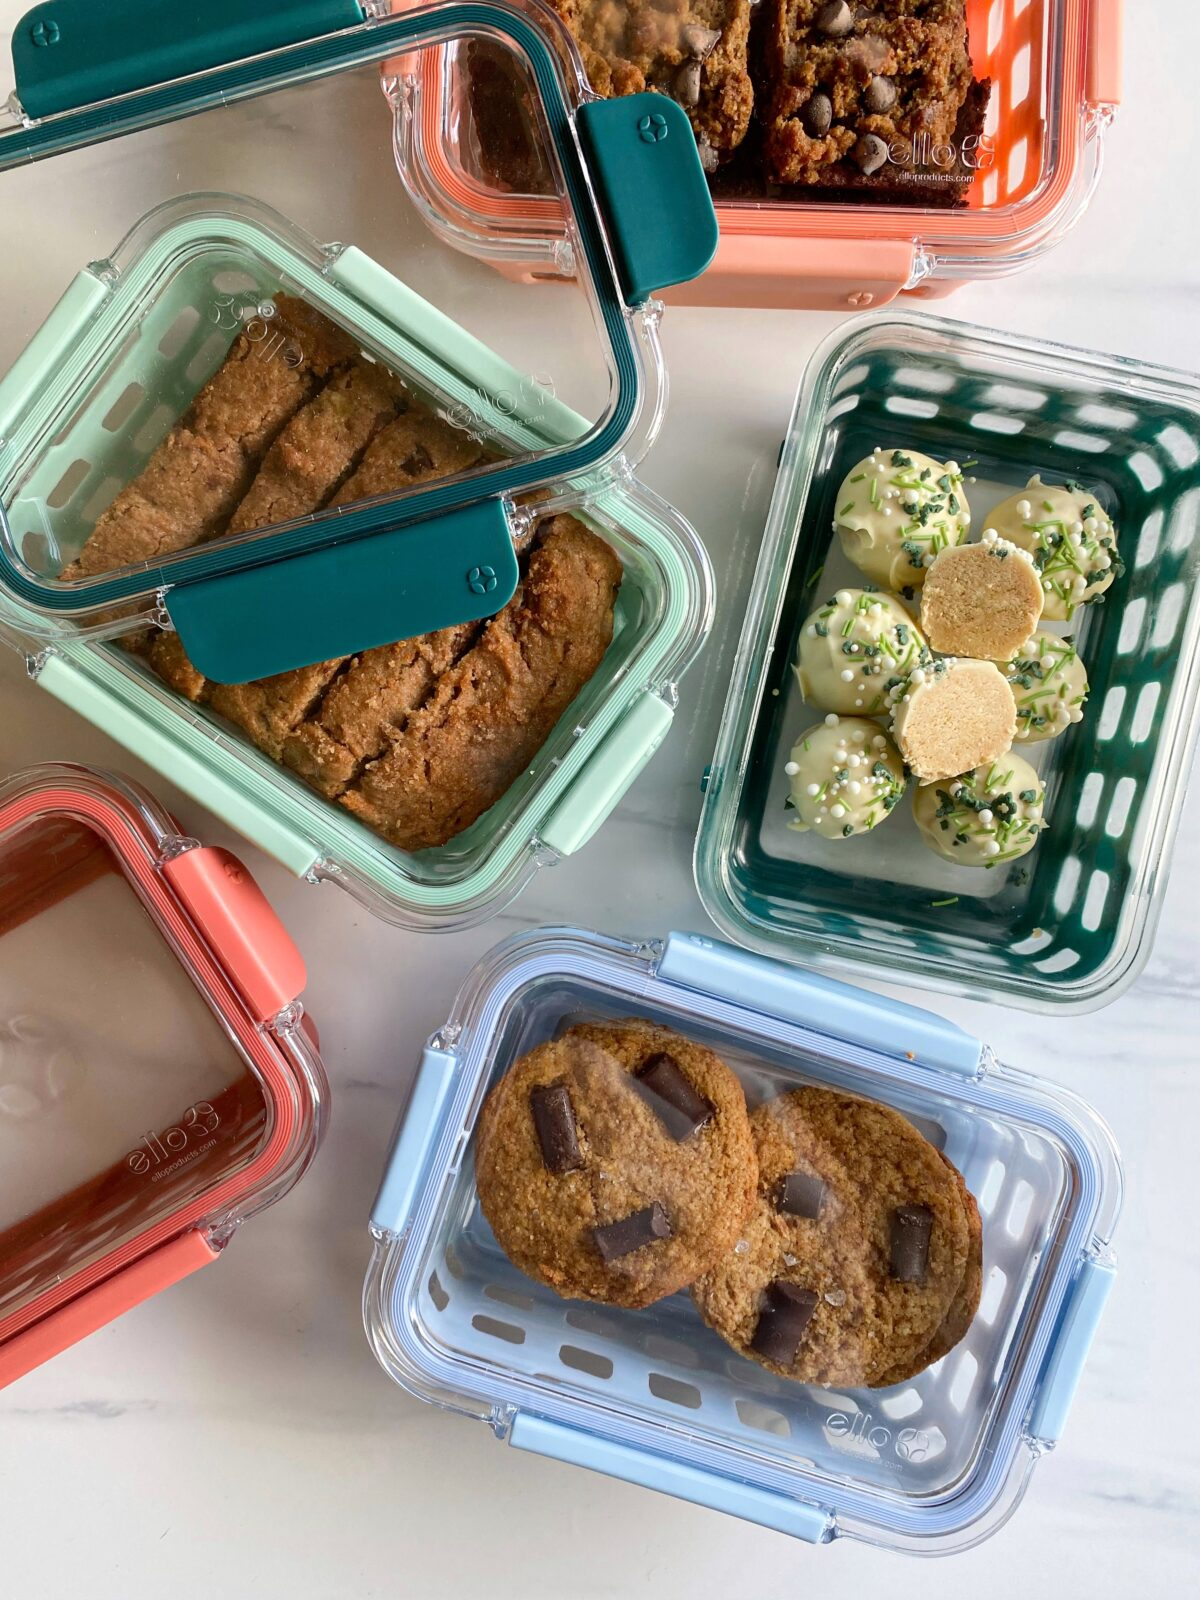 Ello DuraglassTM 10pc Meal Prep